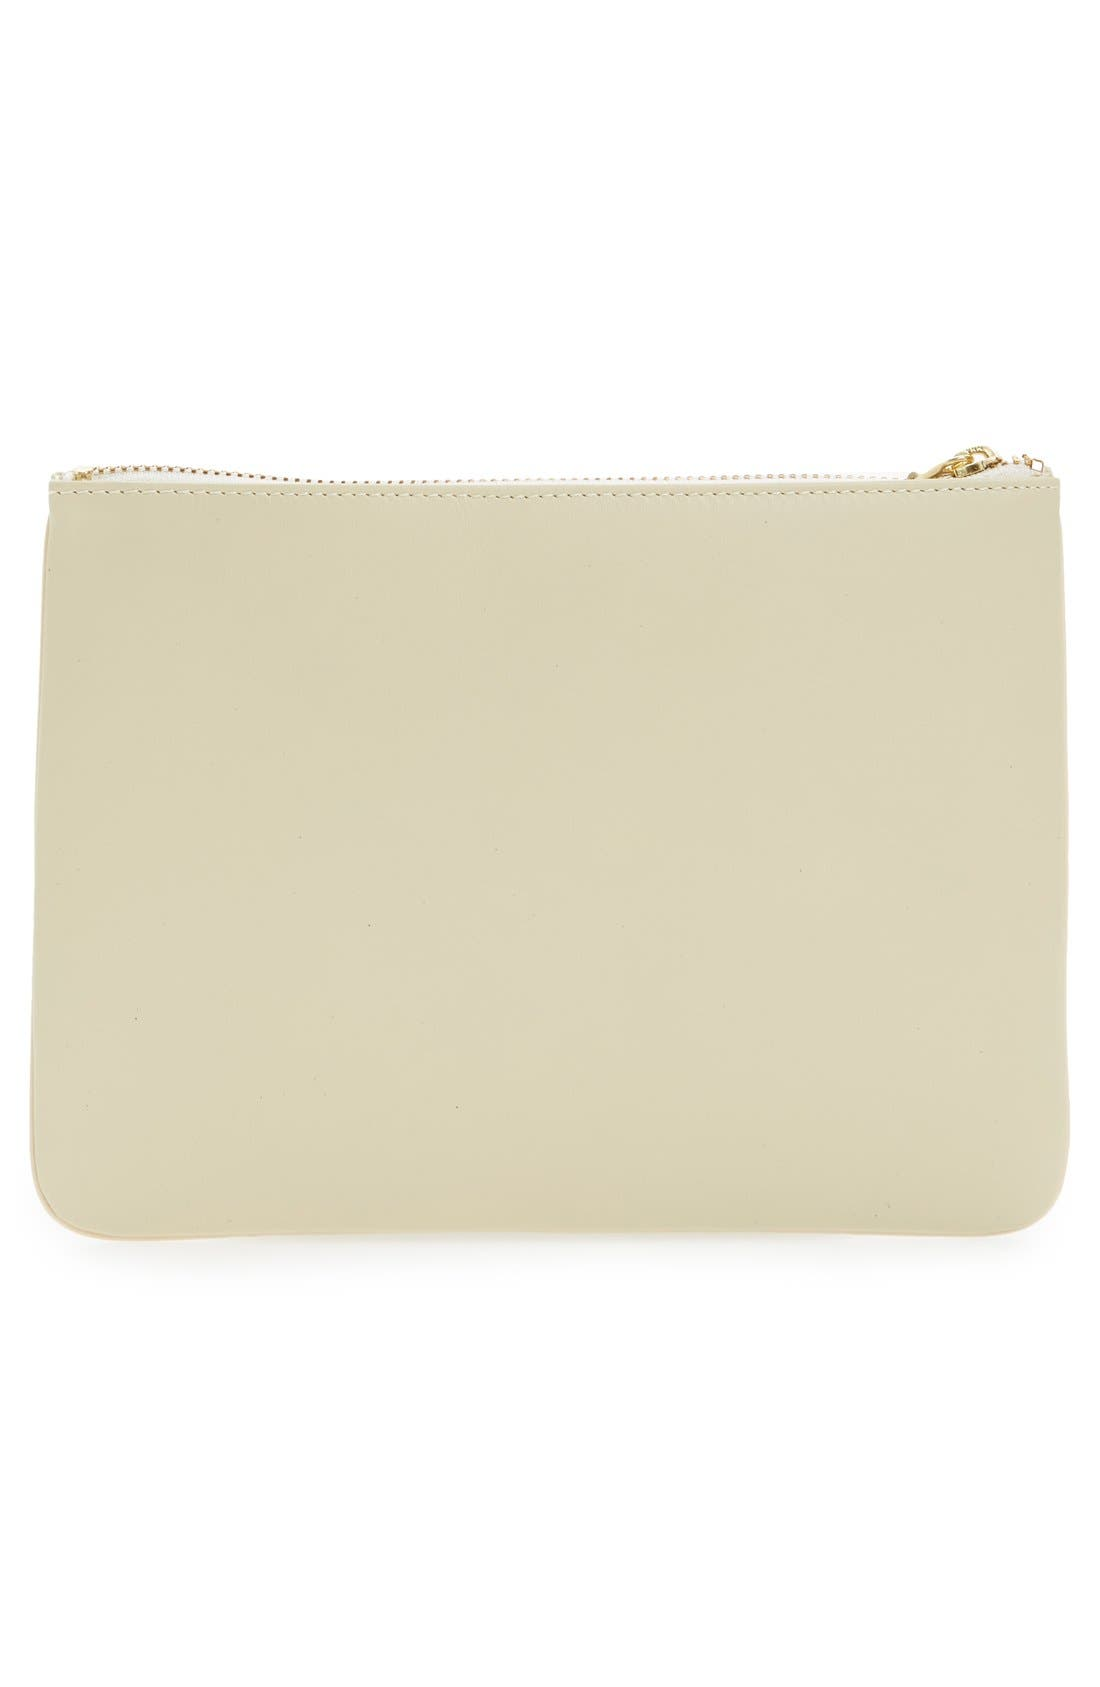 Medium Classic Leather Zip-Up Pouch,                             Alternate thumbnail 4, color,                             Off White